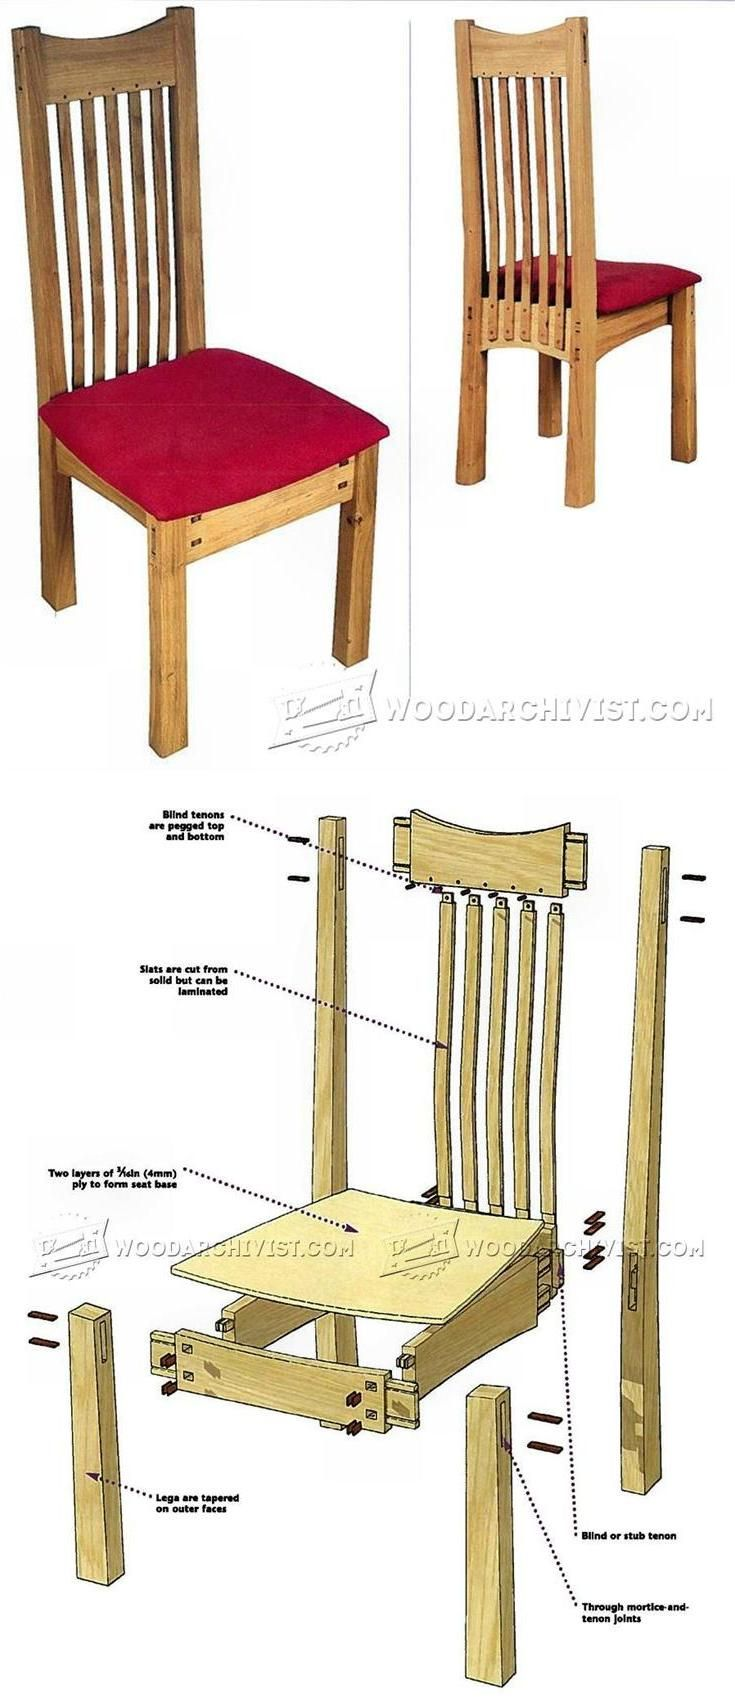 Arts and Crafts Chair Plans - Furniture Plans and Projects | WoodArchivist.com